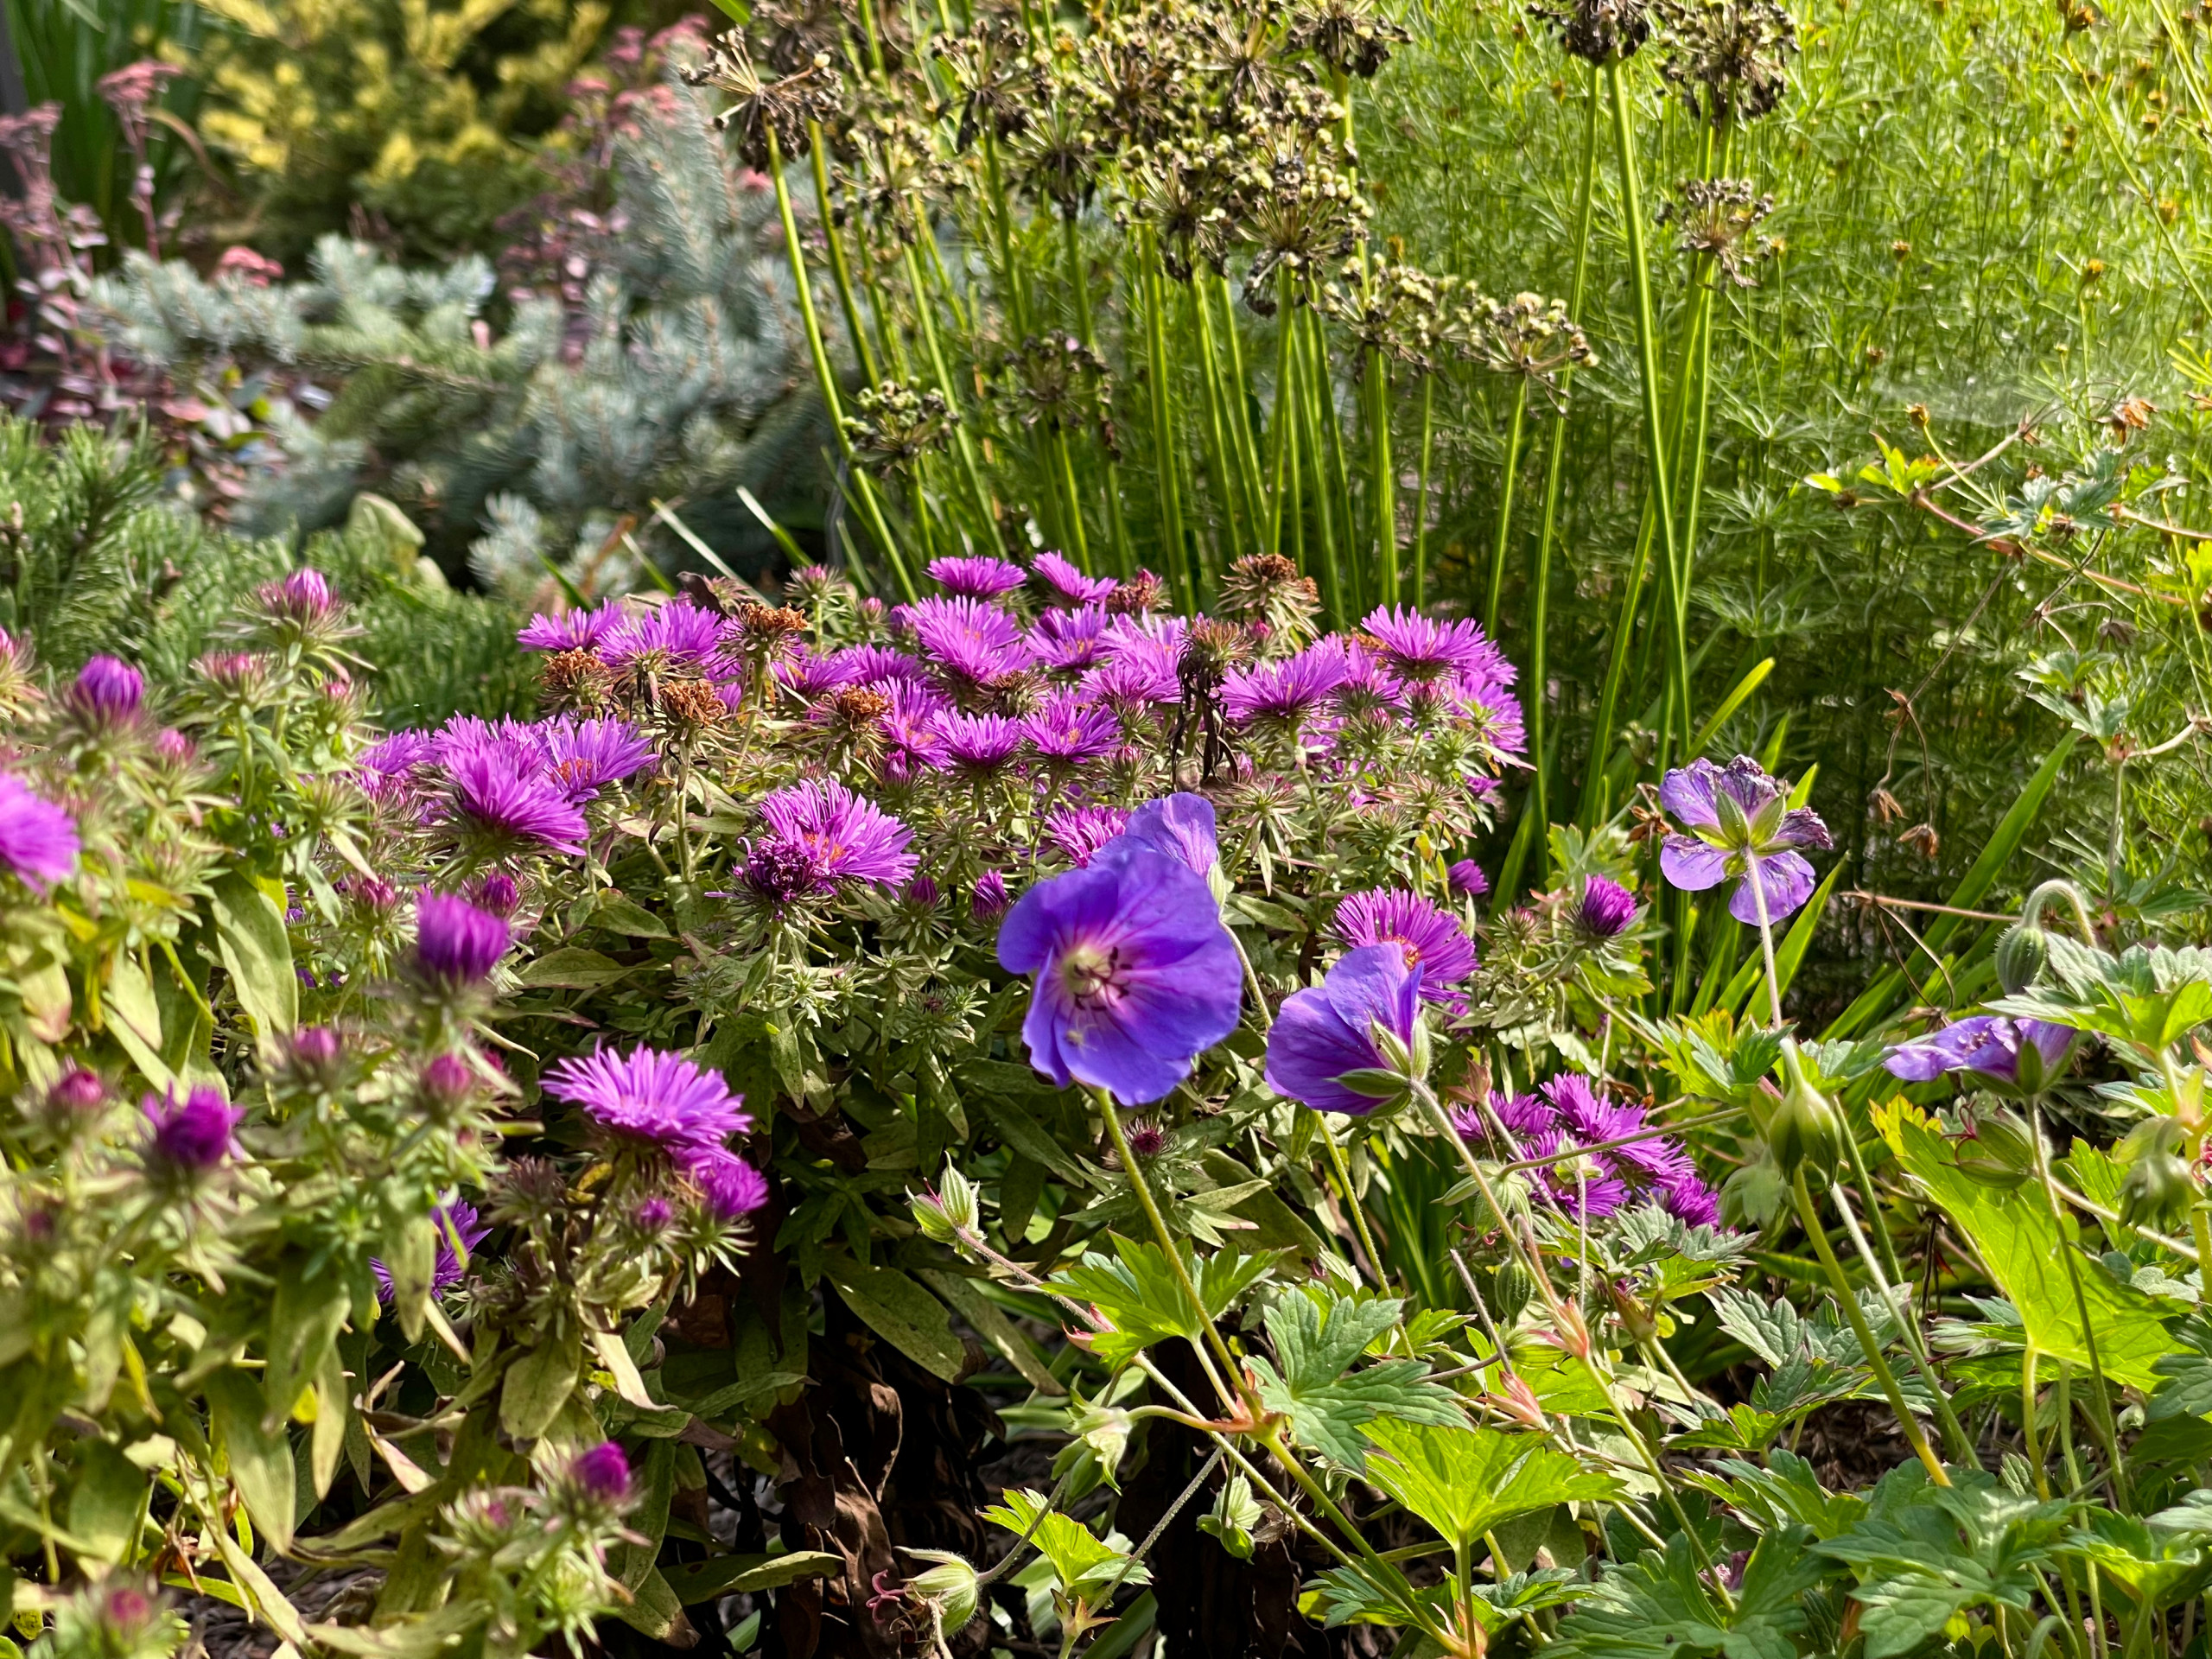 'Rozanne' geranium and 'Purple Dome' asters